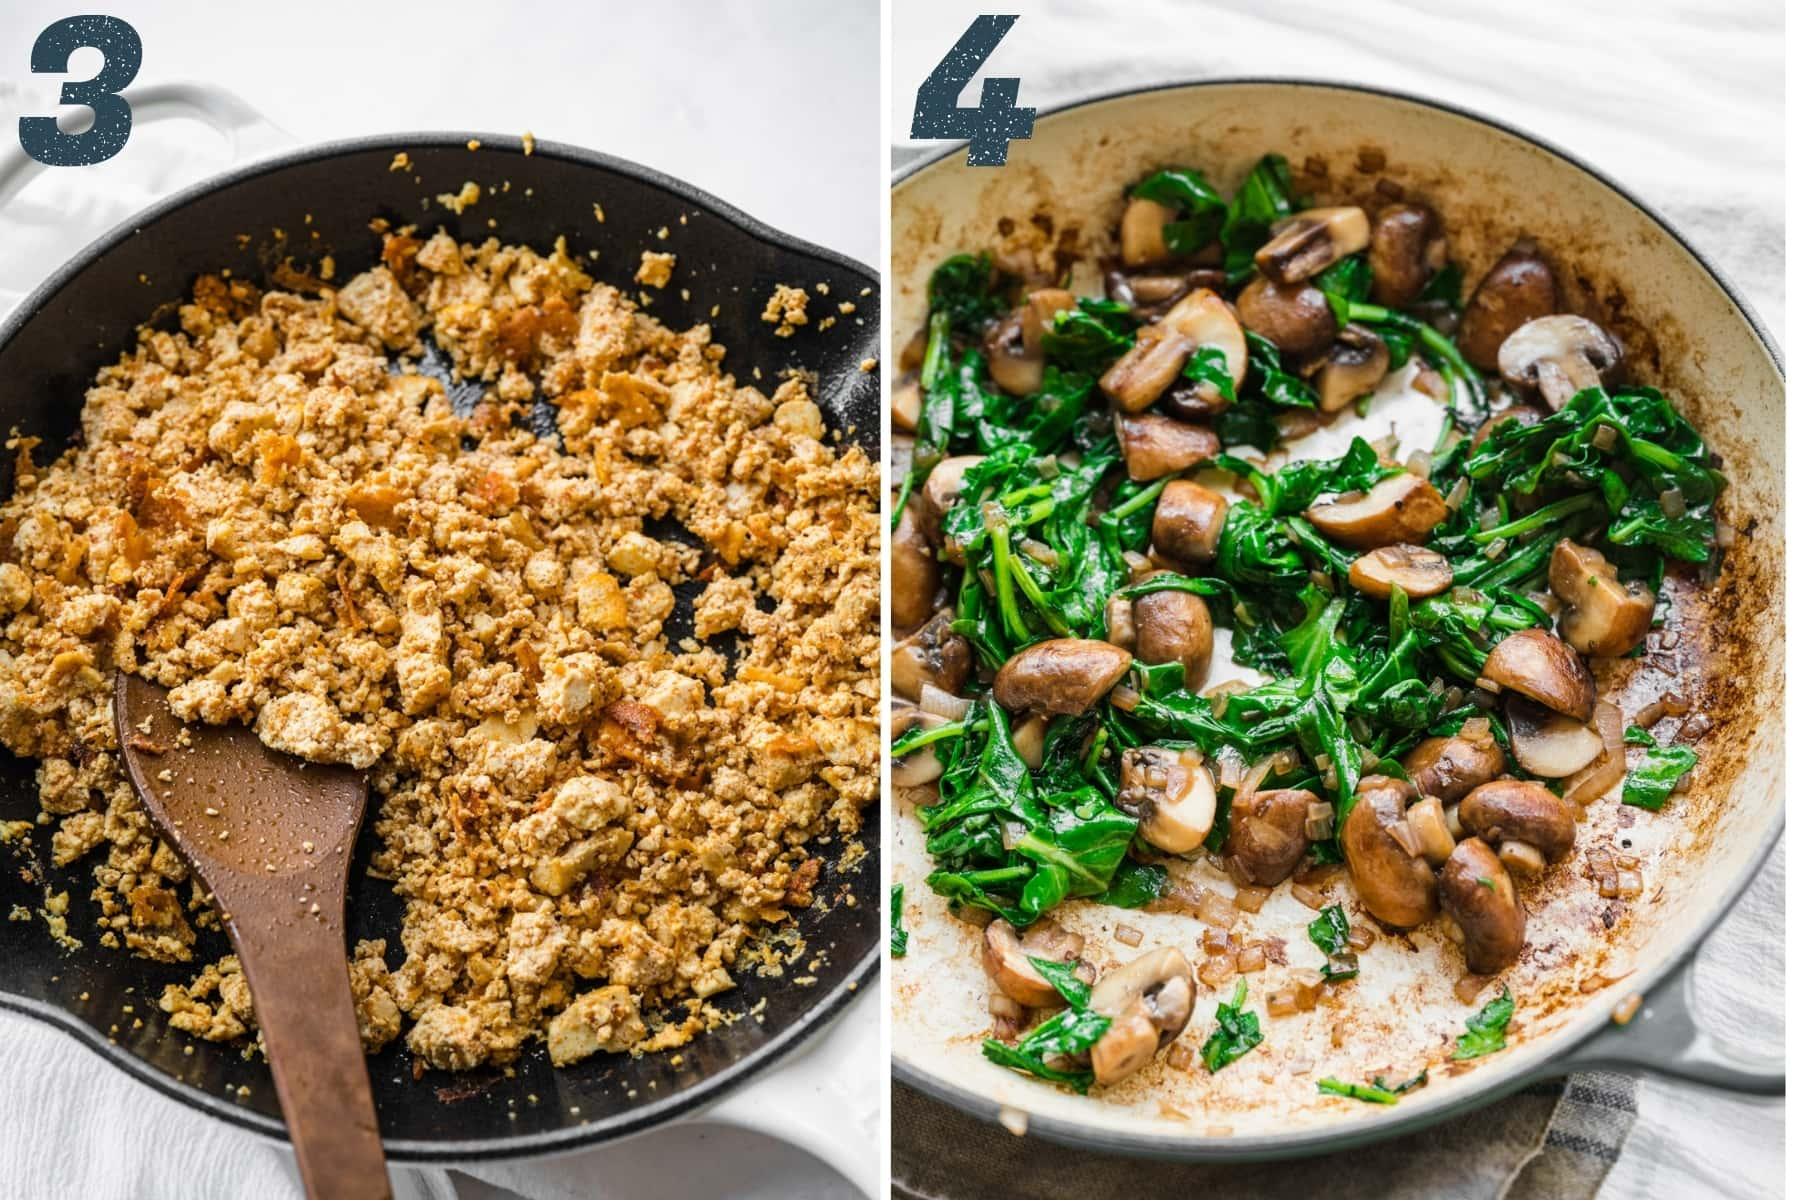 on the left: crispy crumbled tofu in pan. on the right: sauteed mushrooms and kale in pan.